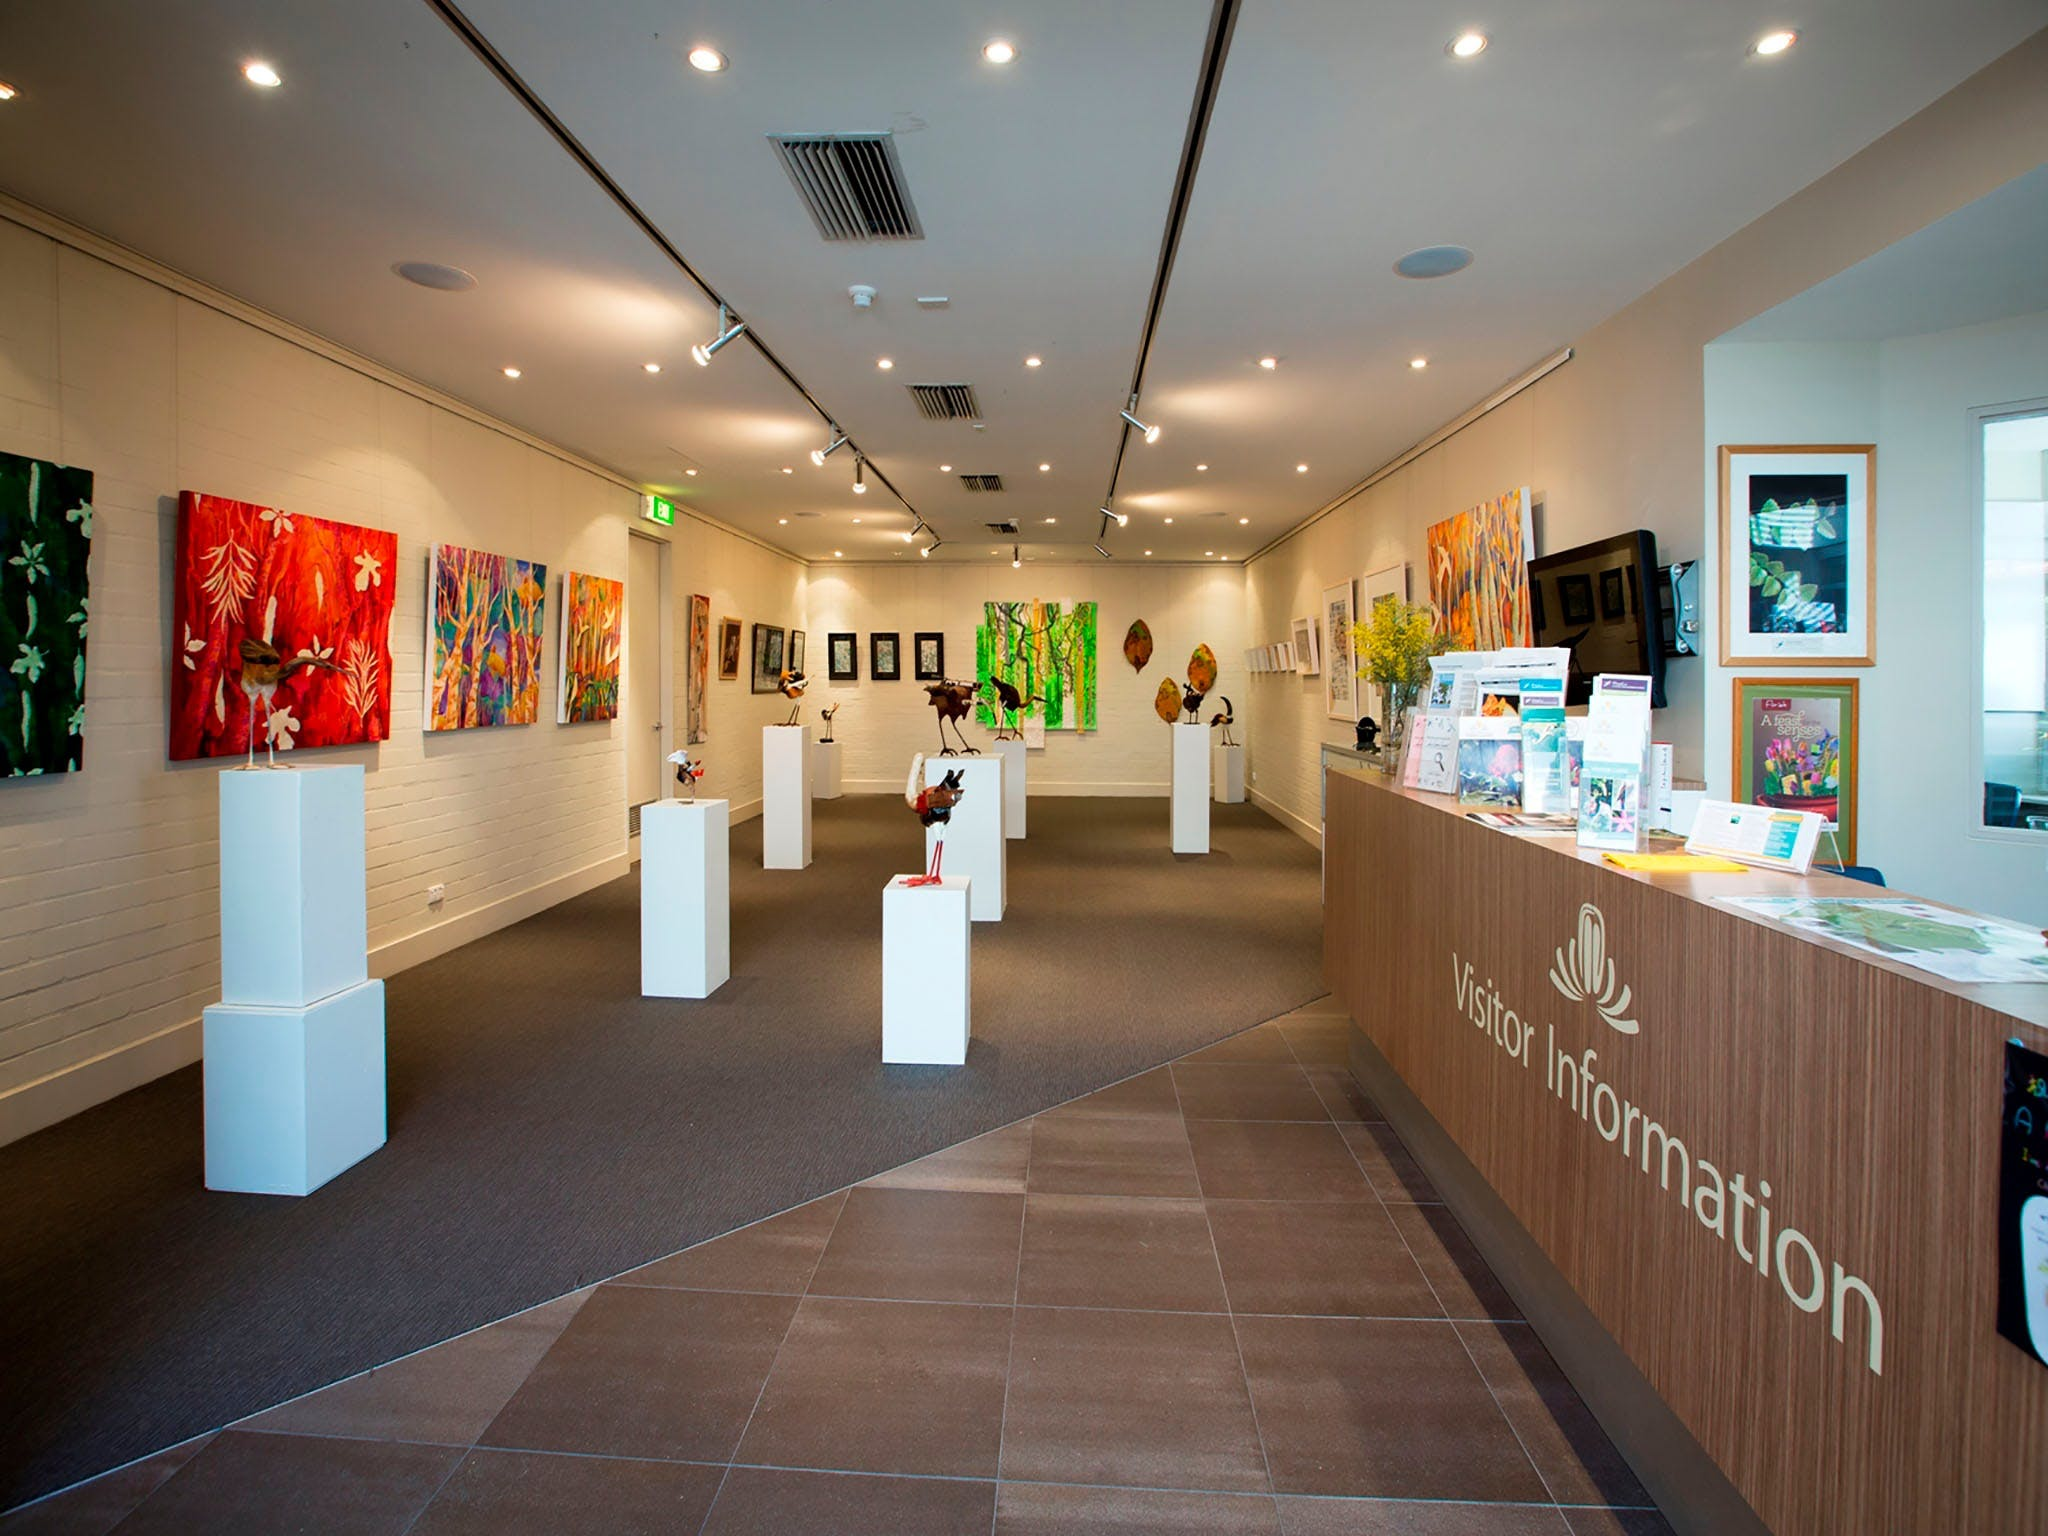 Australian National Botanic Gardens Visitor Centre Gallery - Accommodation VIC